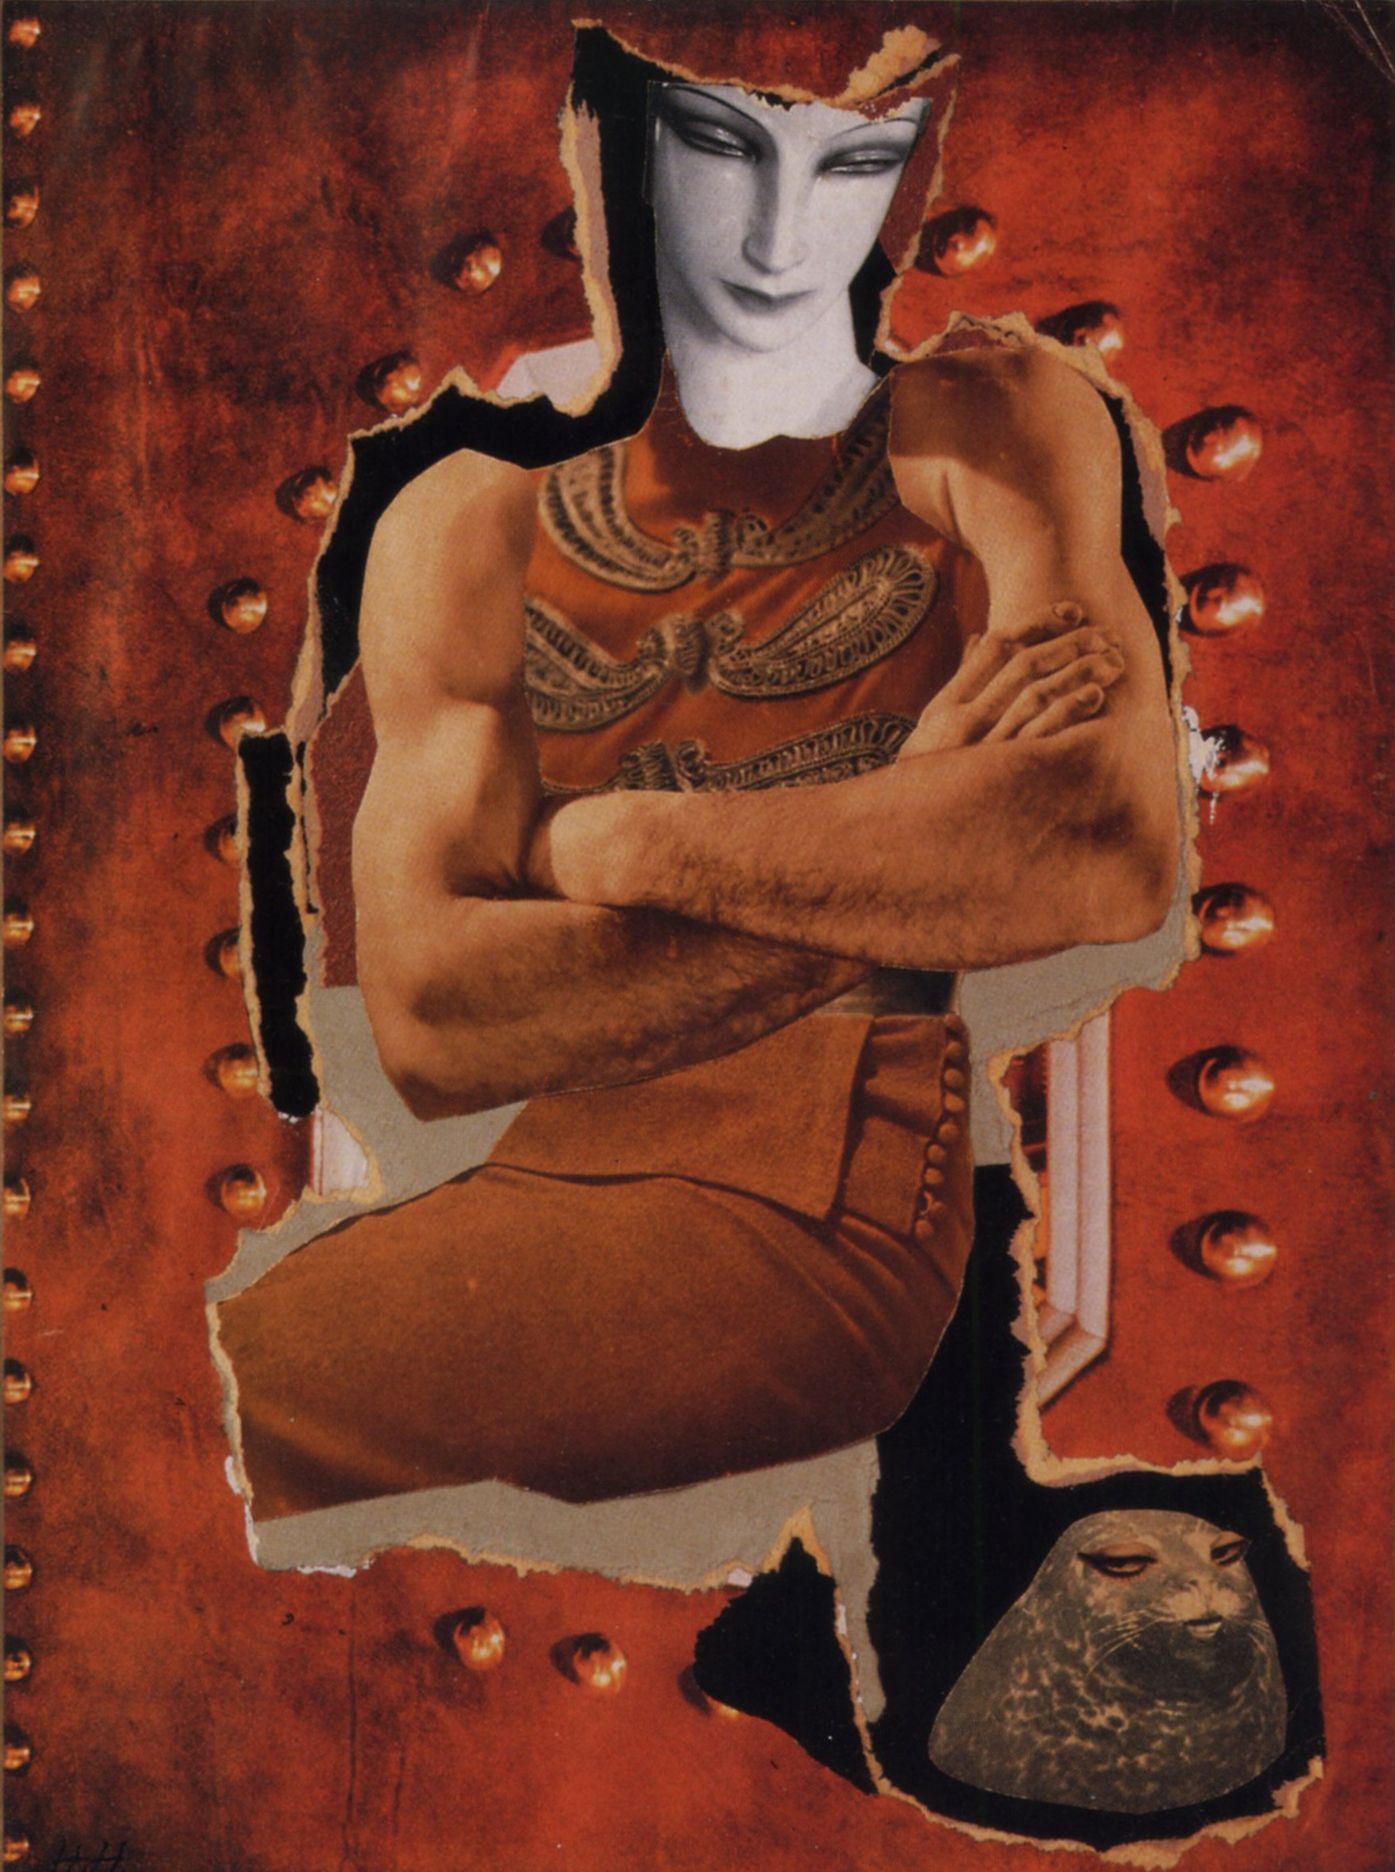 Cut with a kitchen knife hannah hoch - Find This Pin And More On Hannah Hoch